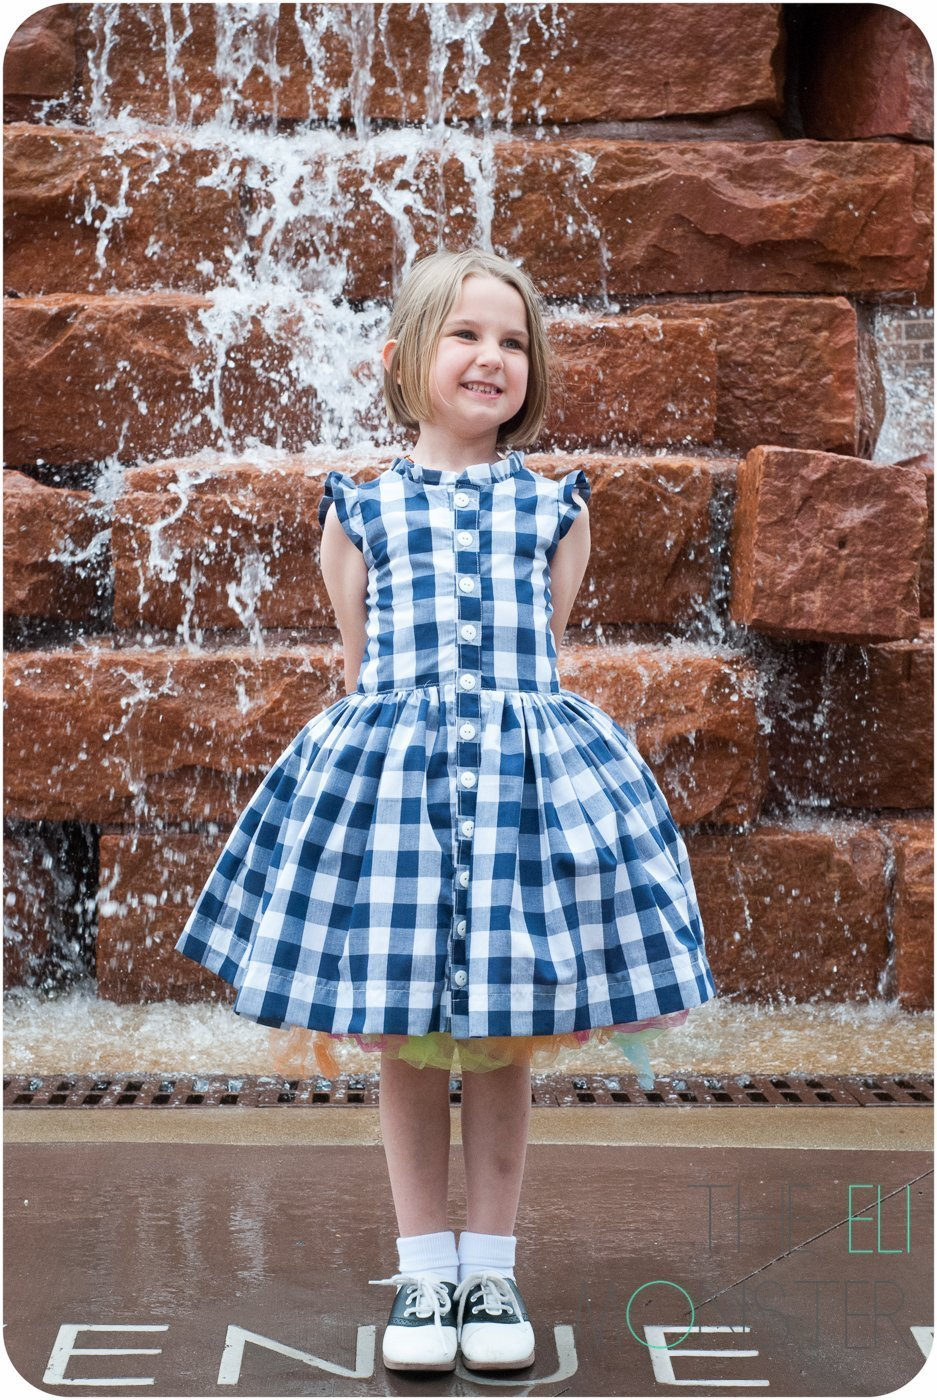 Picknick summer dress sewing pattern for girls sized 12m to 12y girl modeling retro dress in front of water feature jeuxipadfo Images